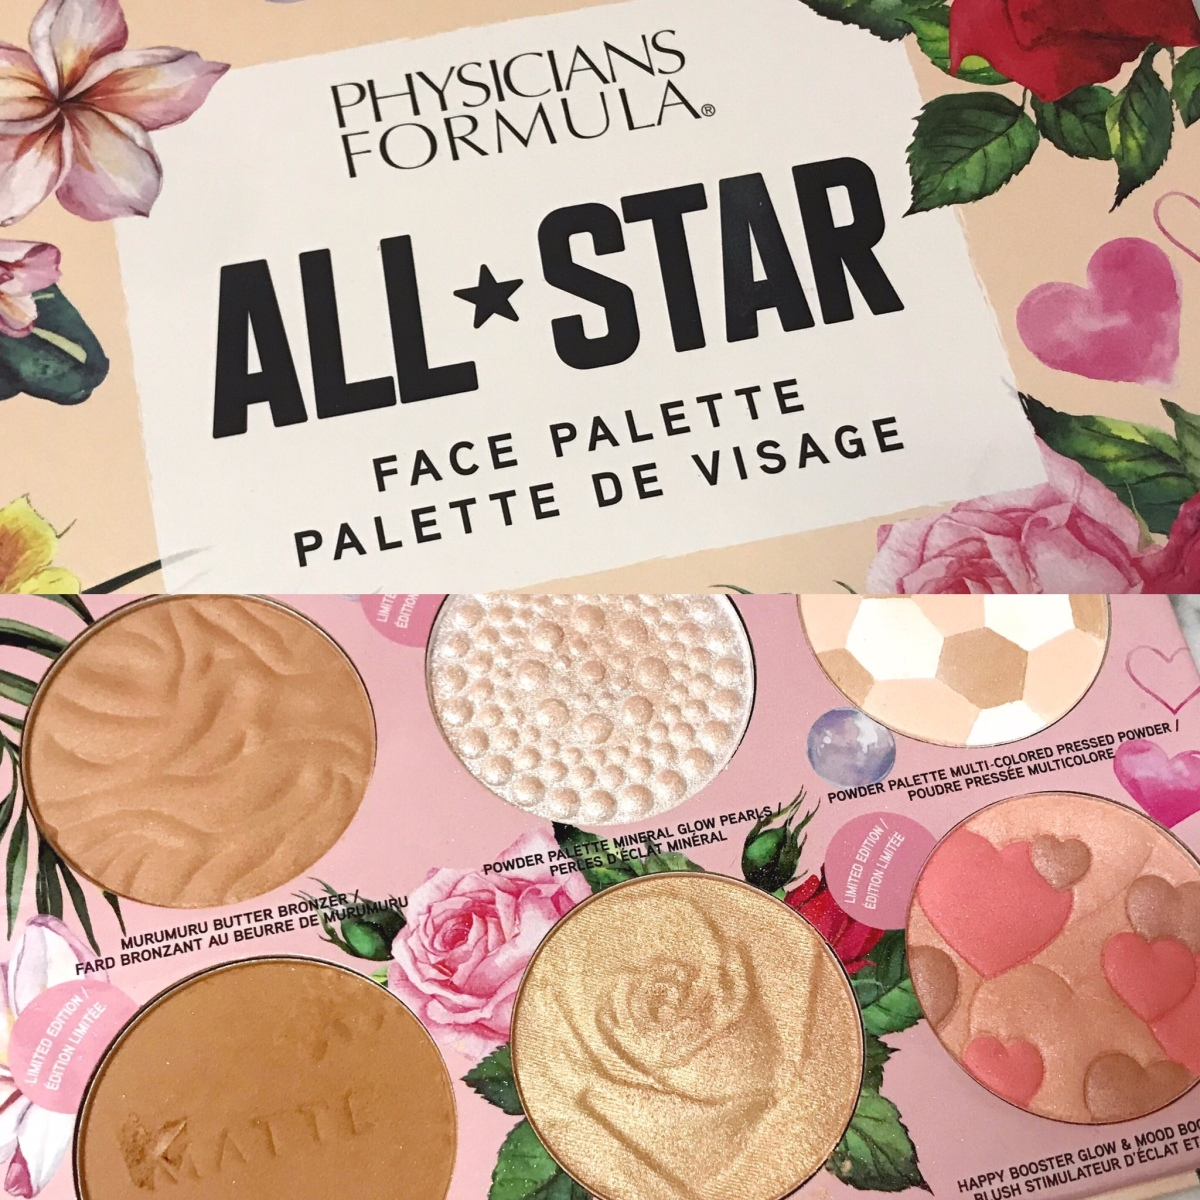 Physicians Formula All-Star Face Palette | Review + Swatches